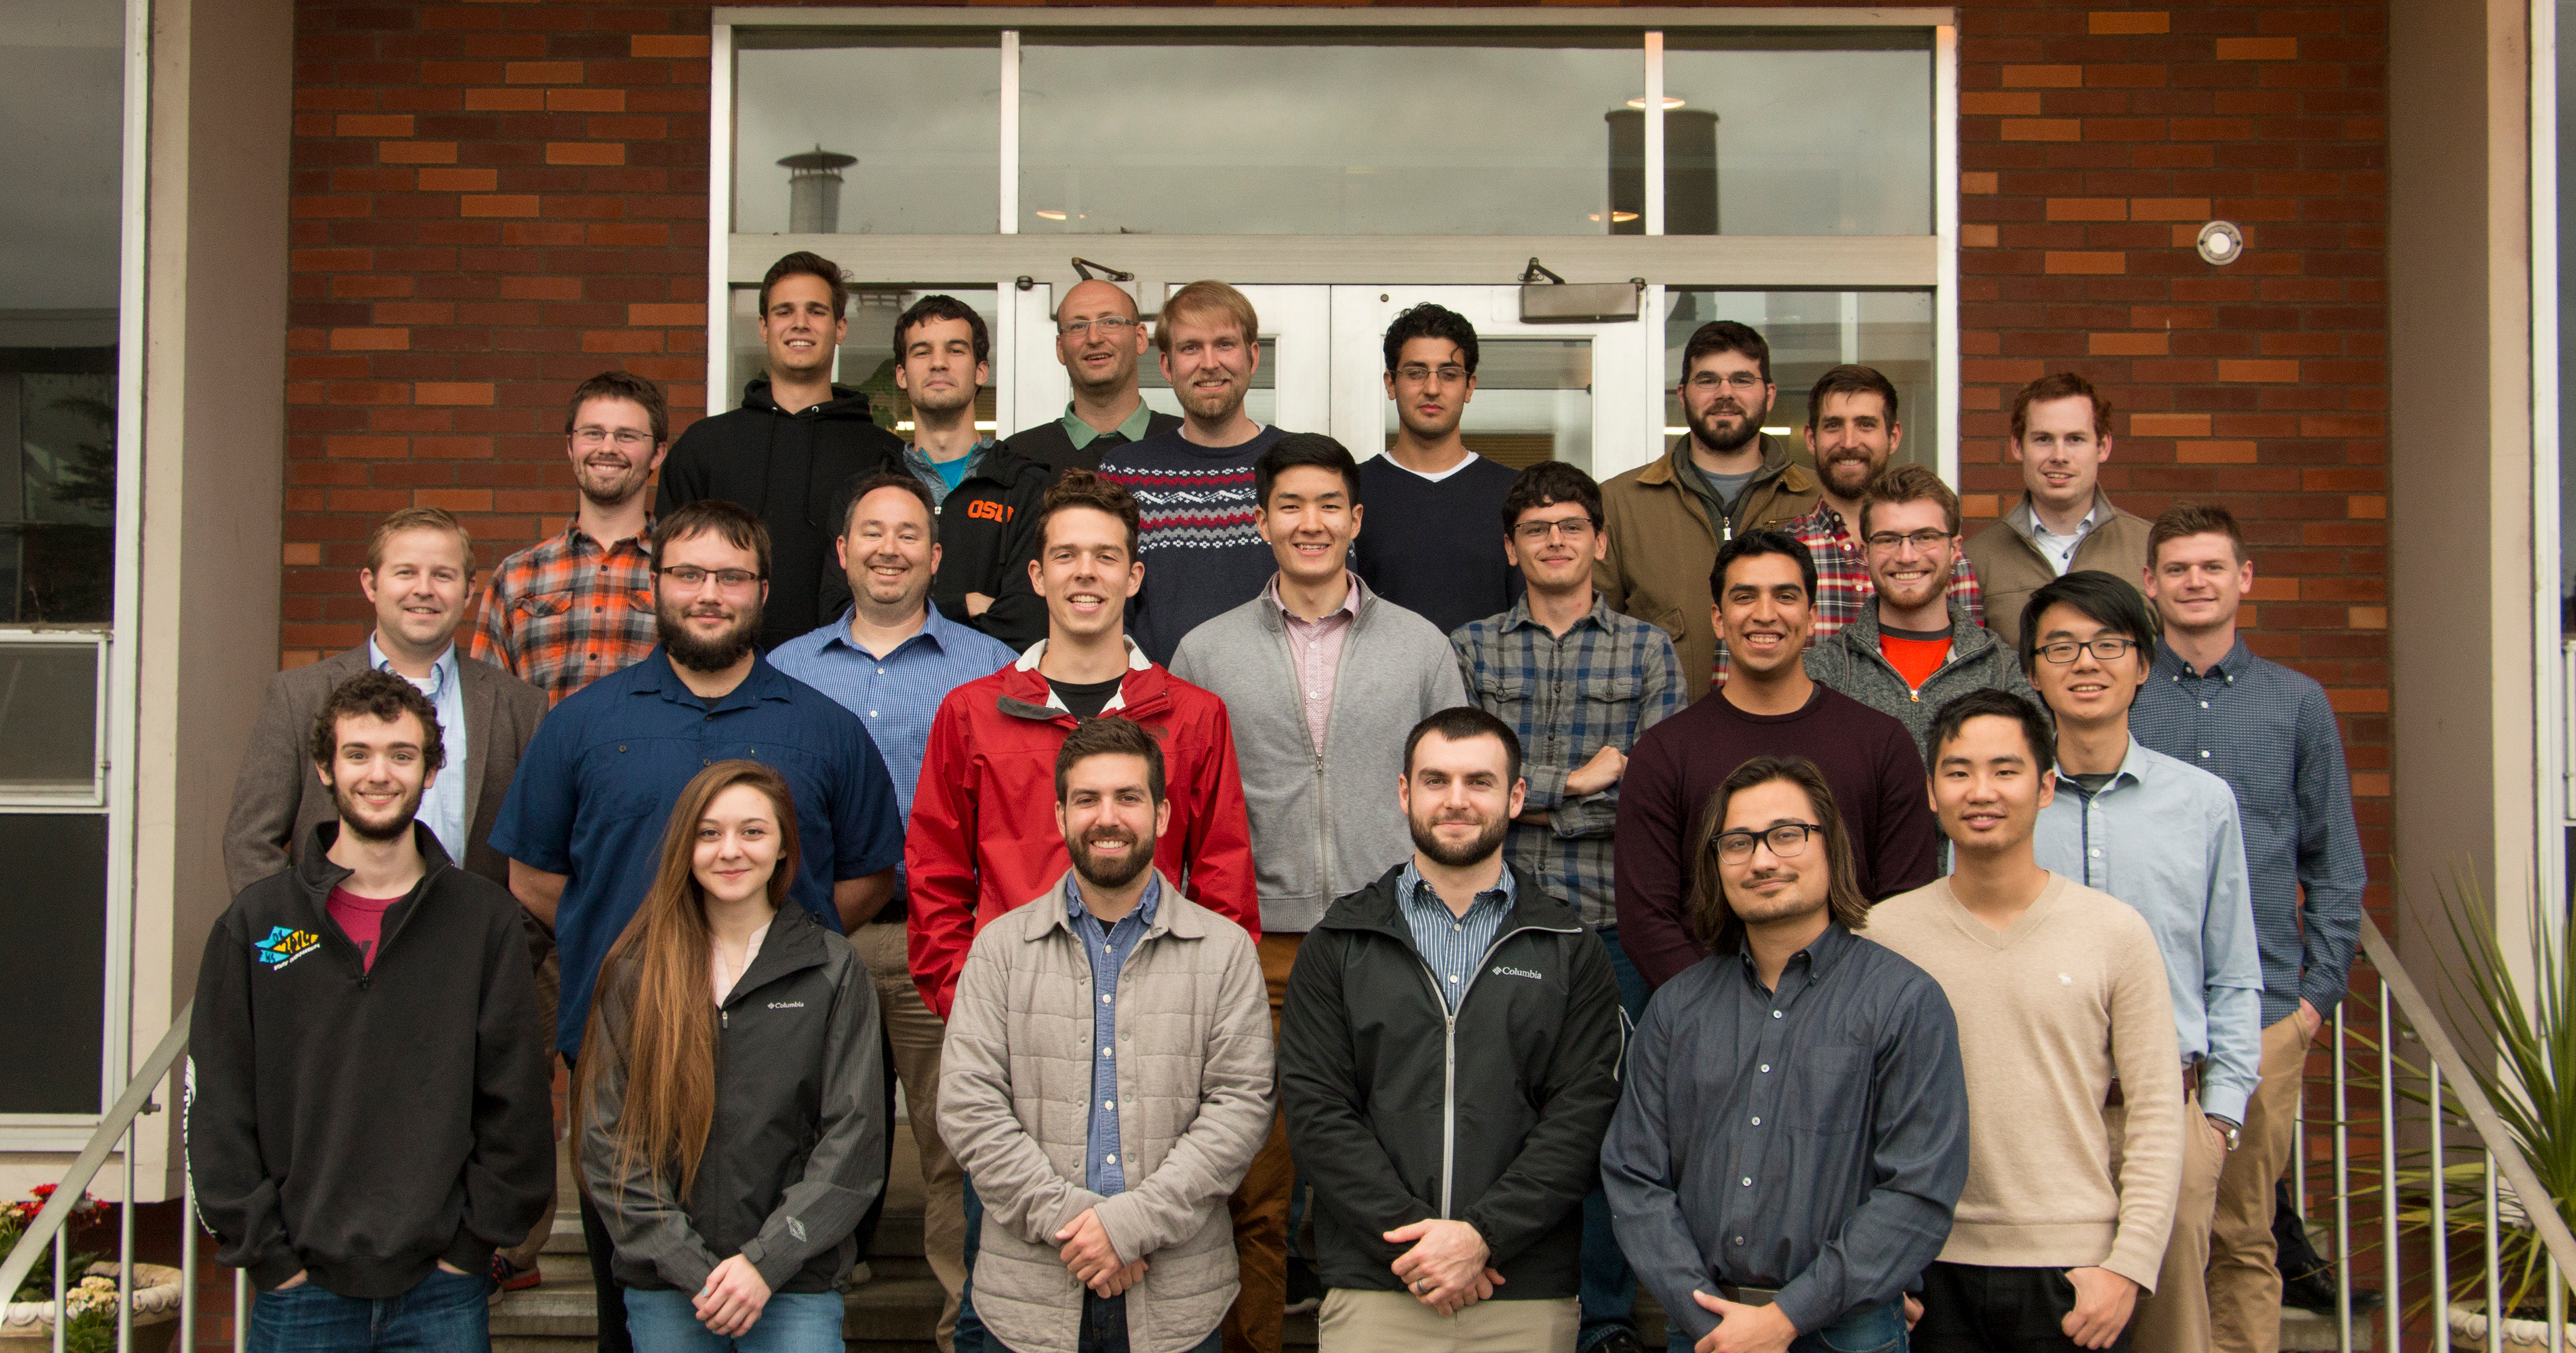 A group photo of the Marcum Research Group